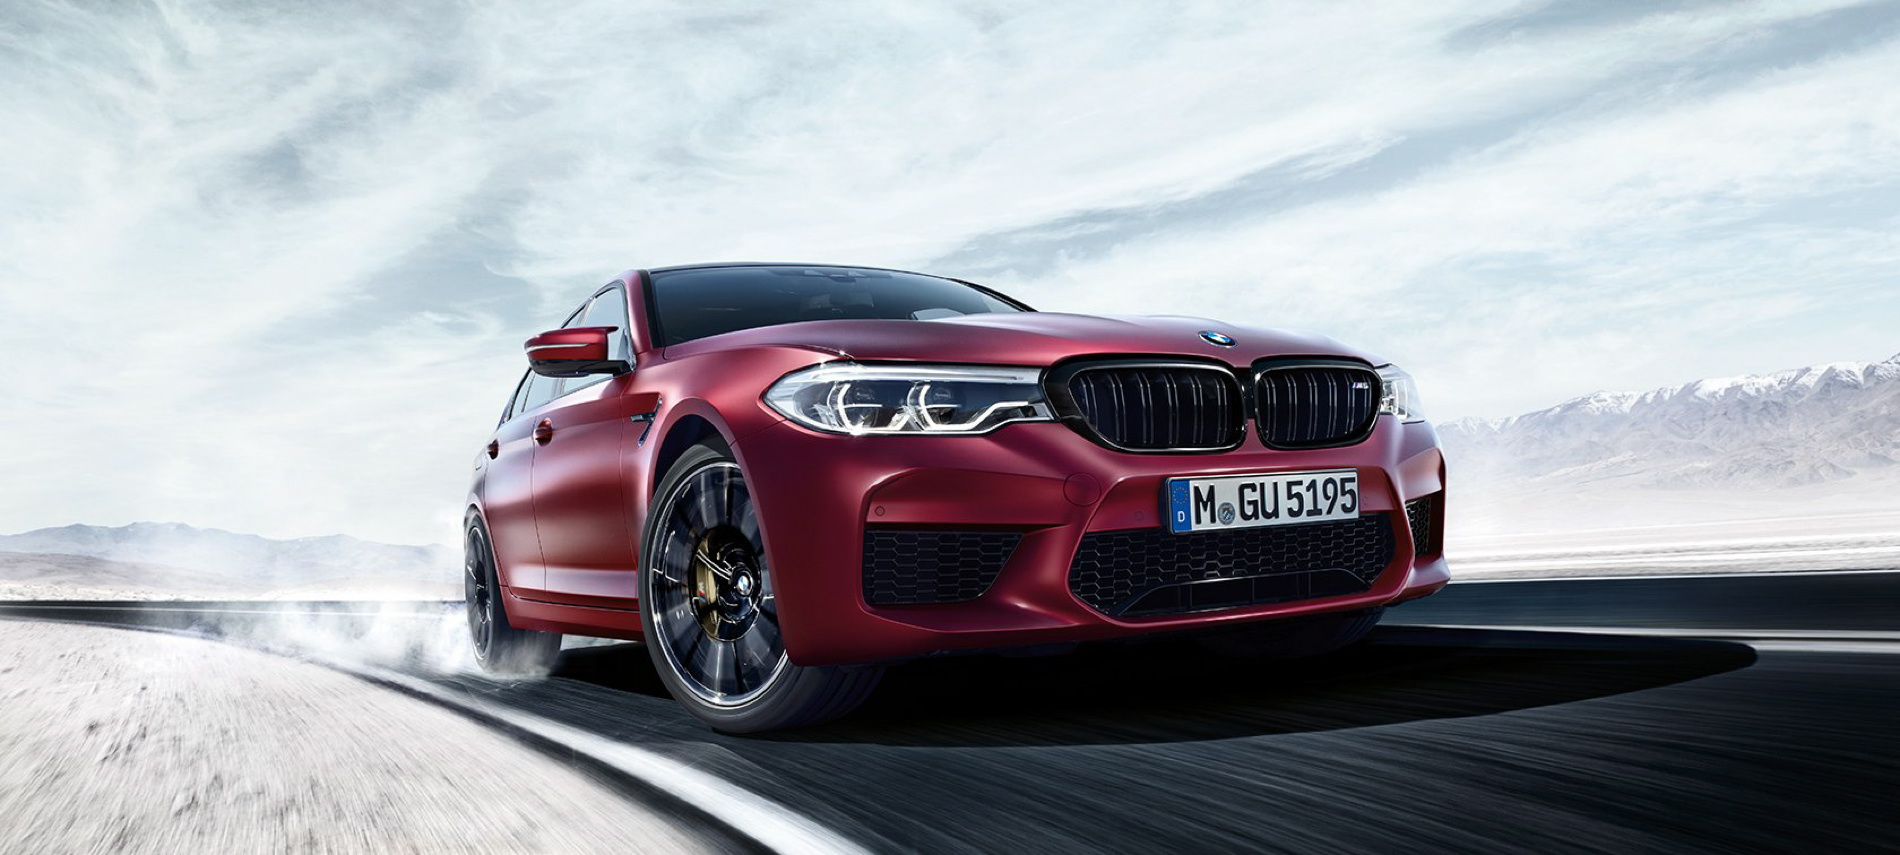 The Bmw M5 Is Now Faster To 62 Mph Than Plenty Of Supercars